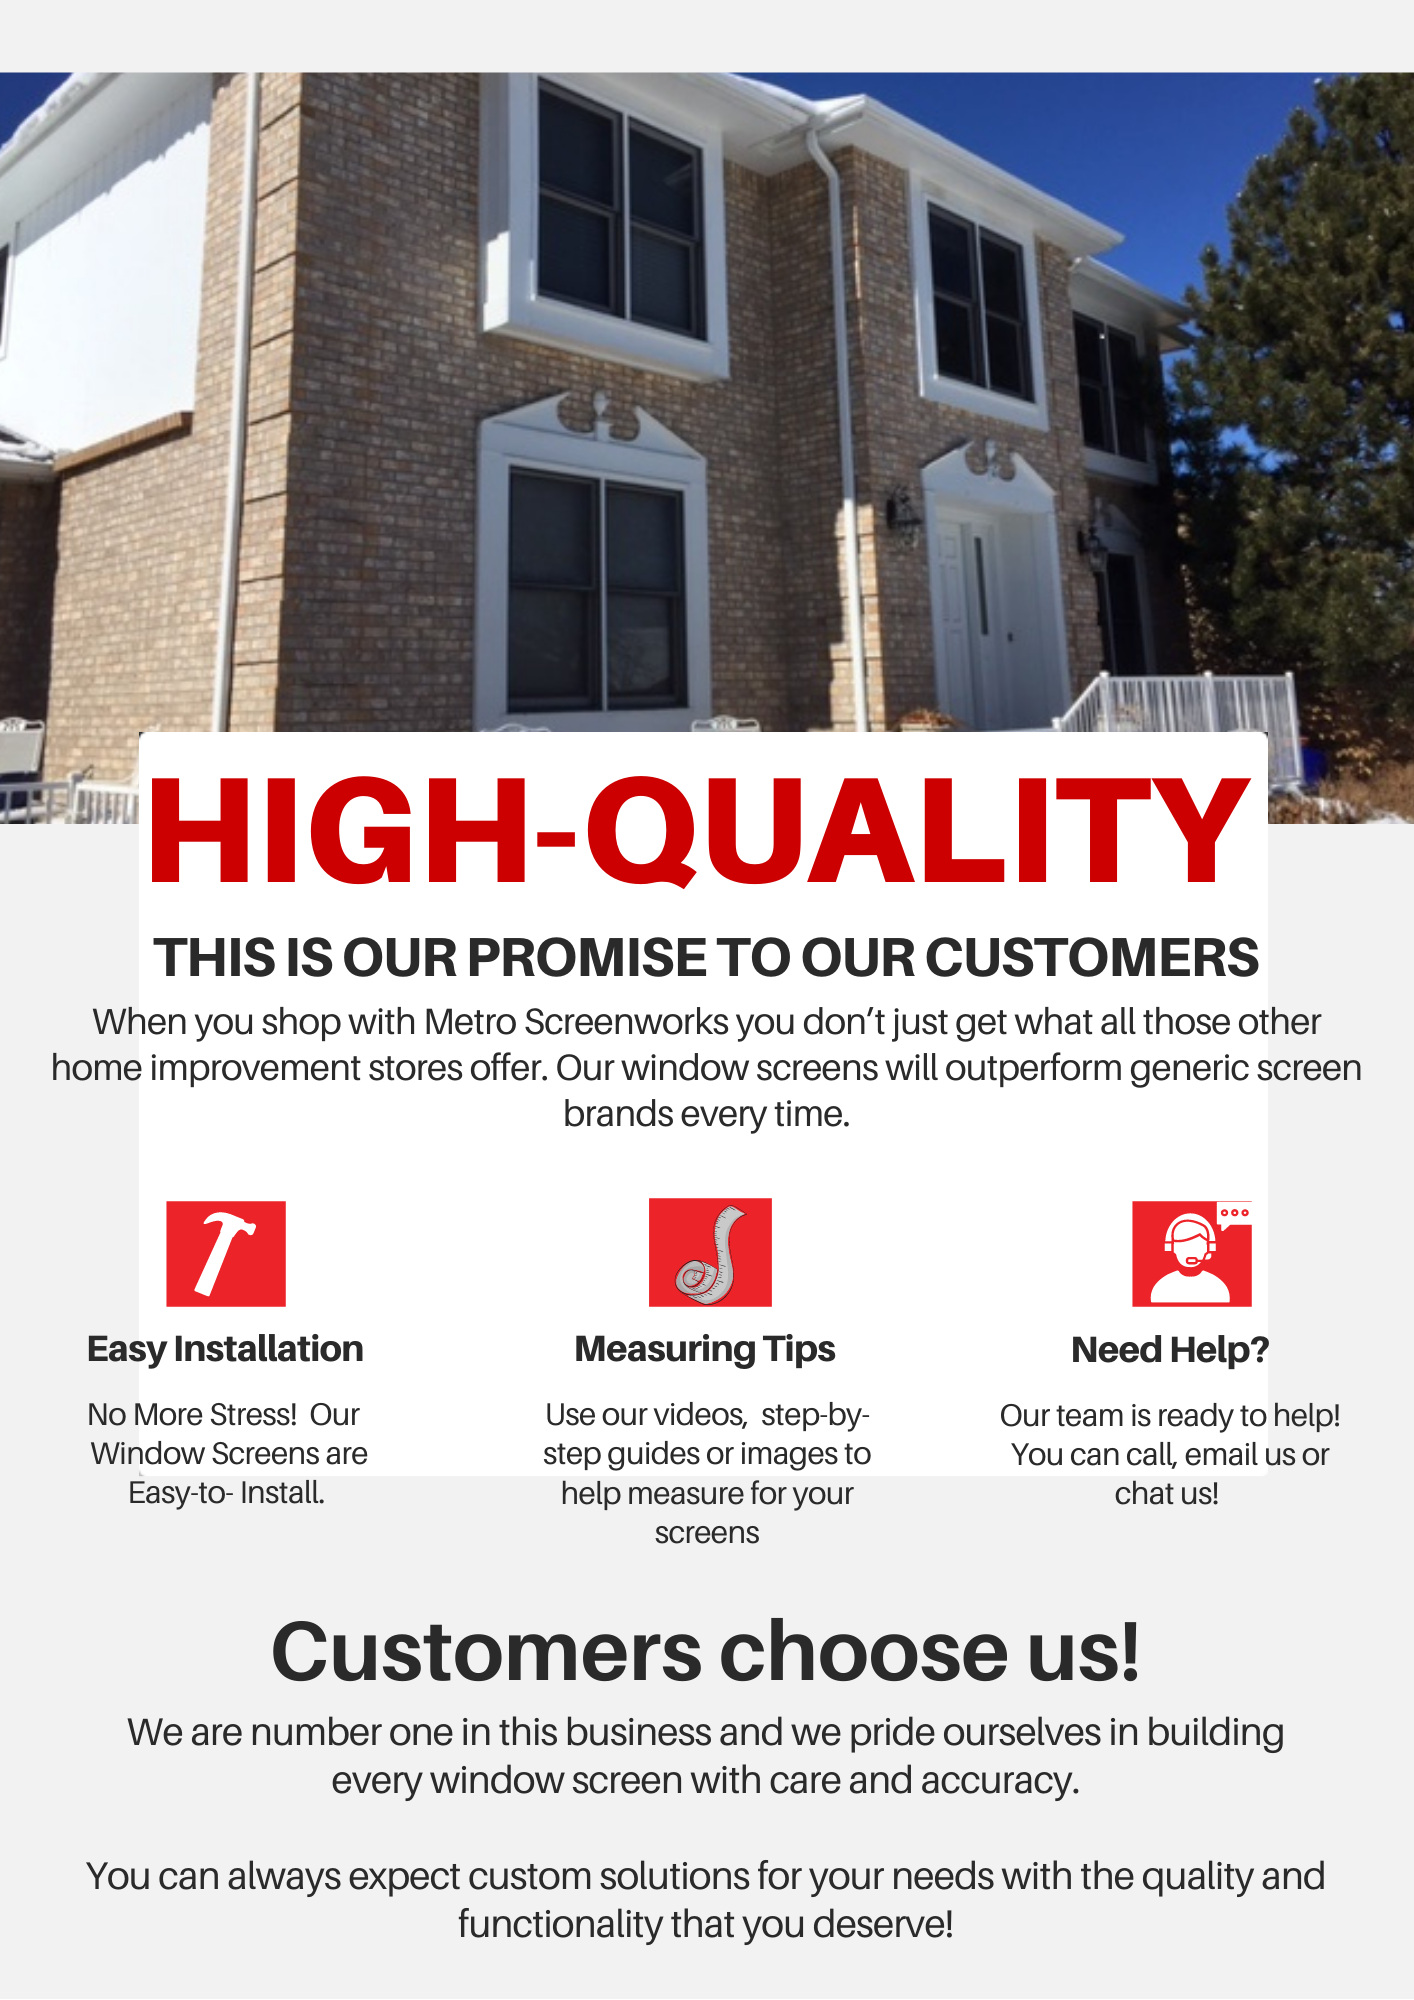 Complete Window Screens High Quality, Easy Installation, Perfect for Window Screen Replacements